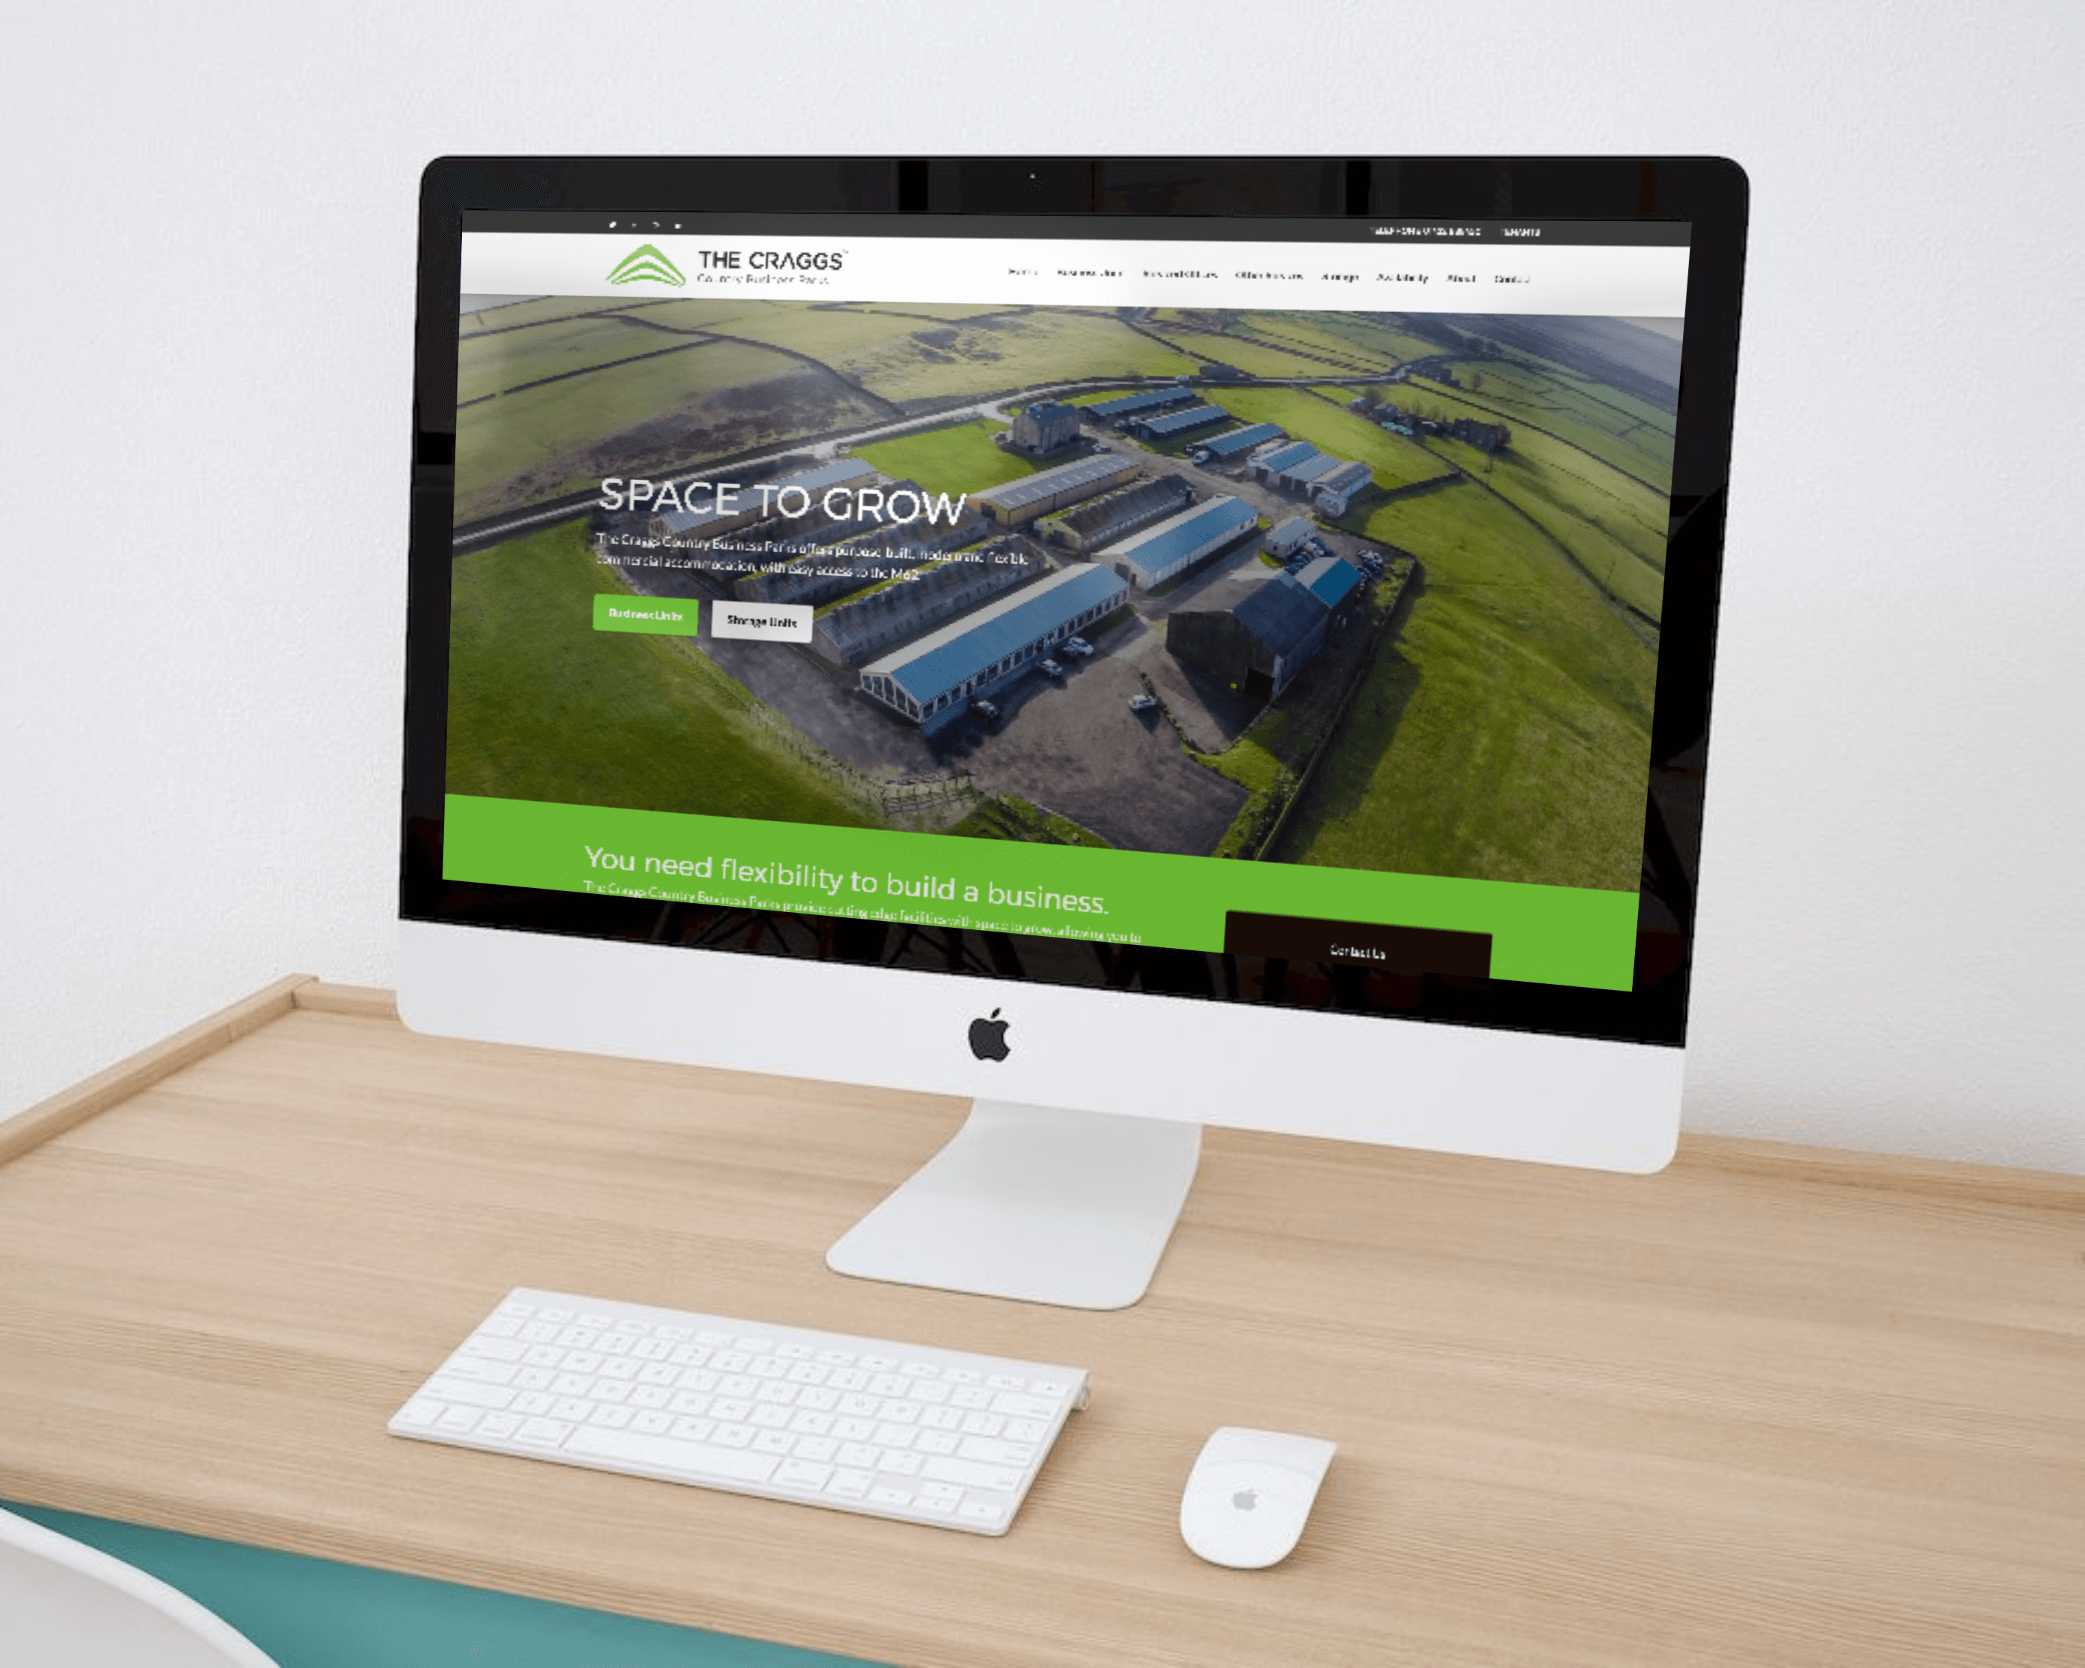 Website Redesign for Property Development and Management Company